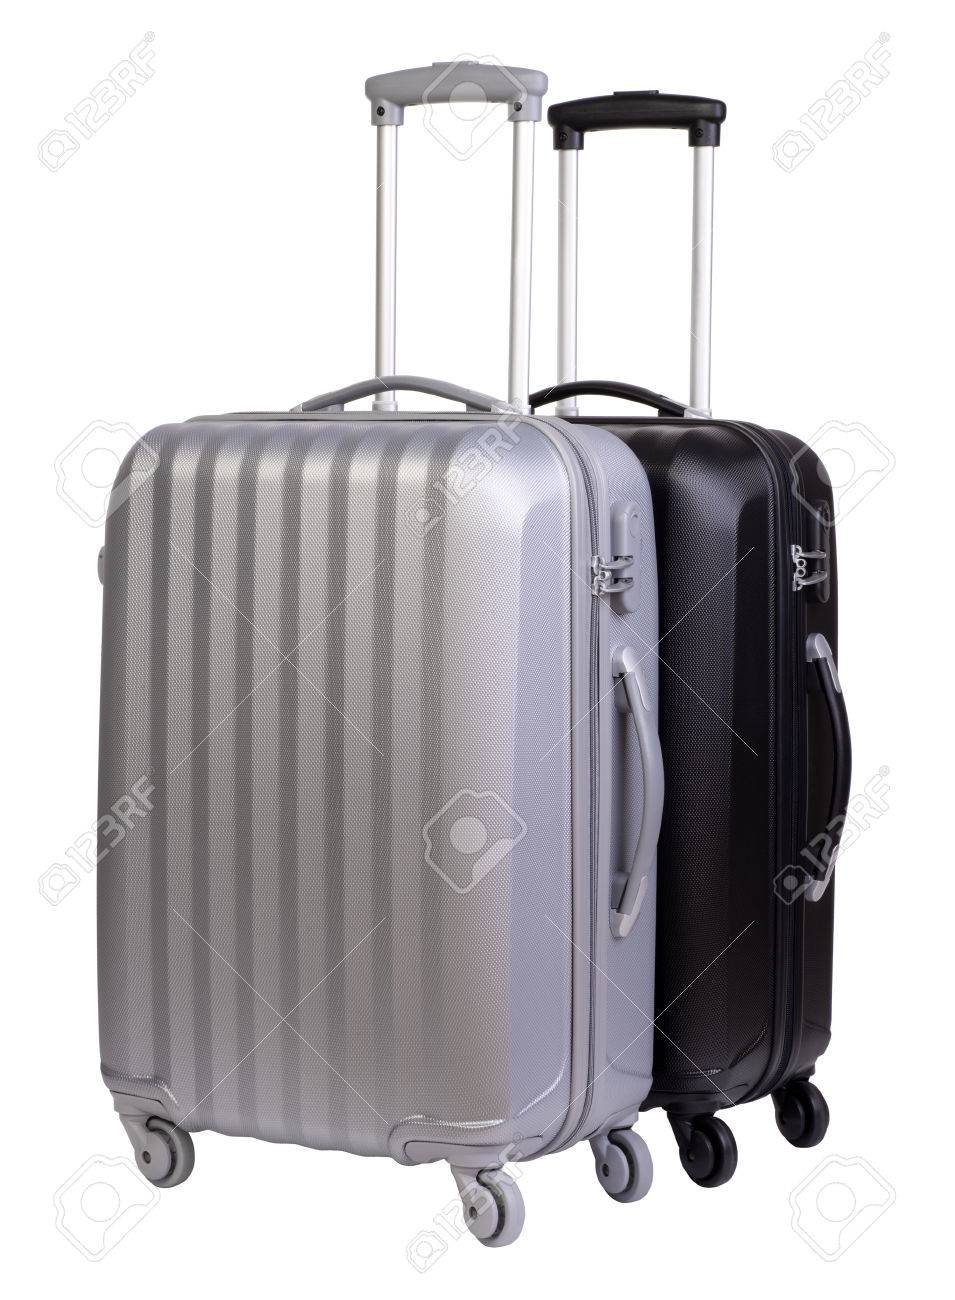 modern suitcases isolated on white background stock photo picture  - modern suitcases isolated on white background stock photo